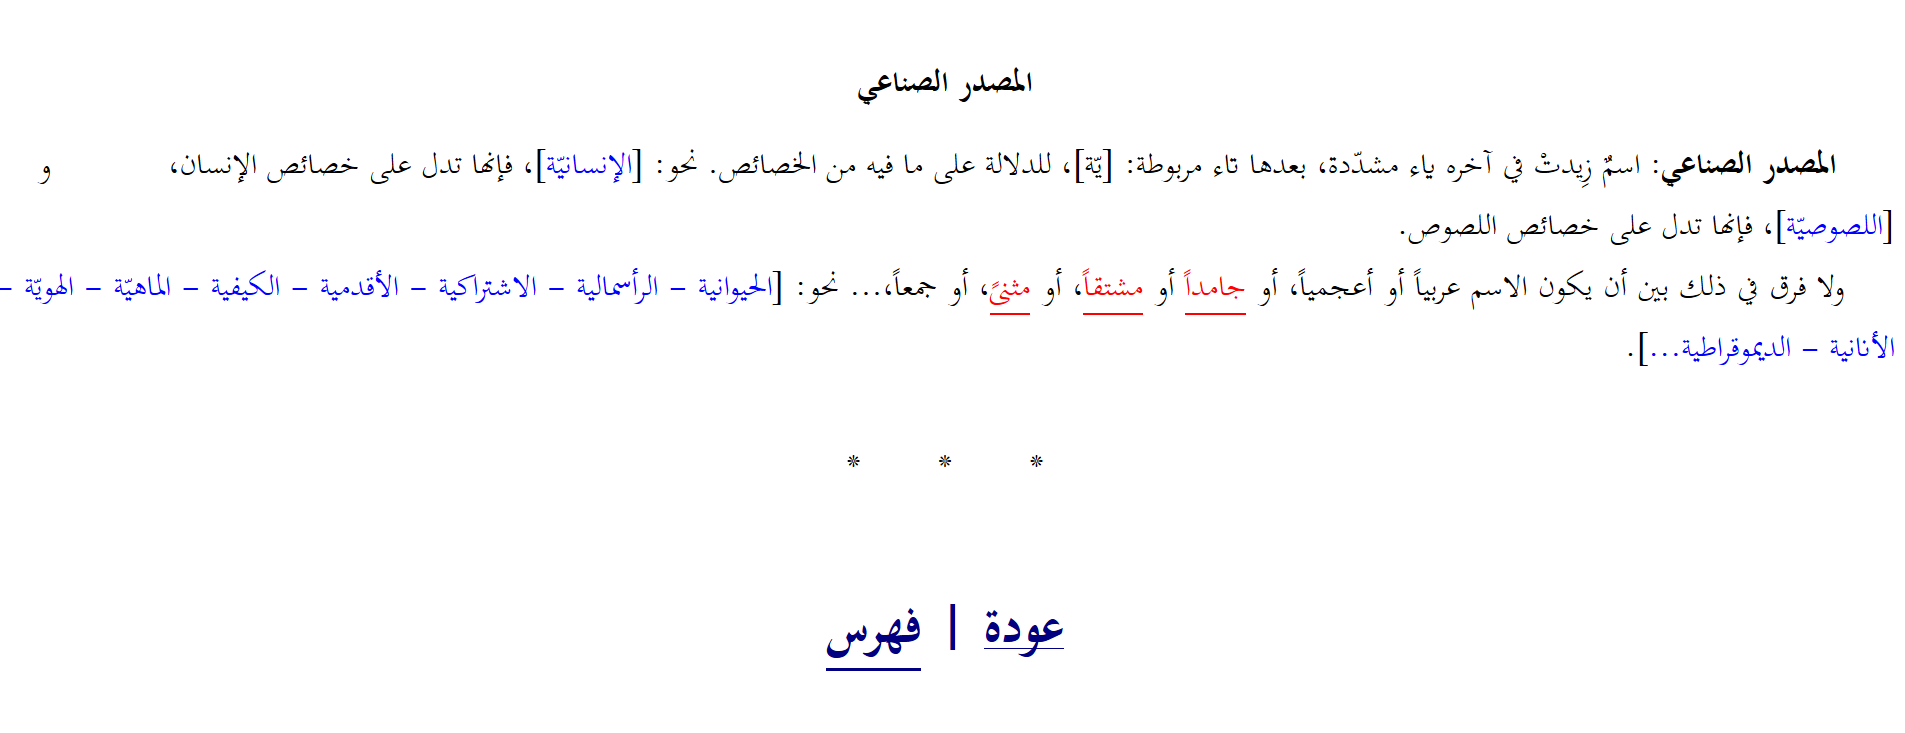 Arabic Grammar in Arabic